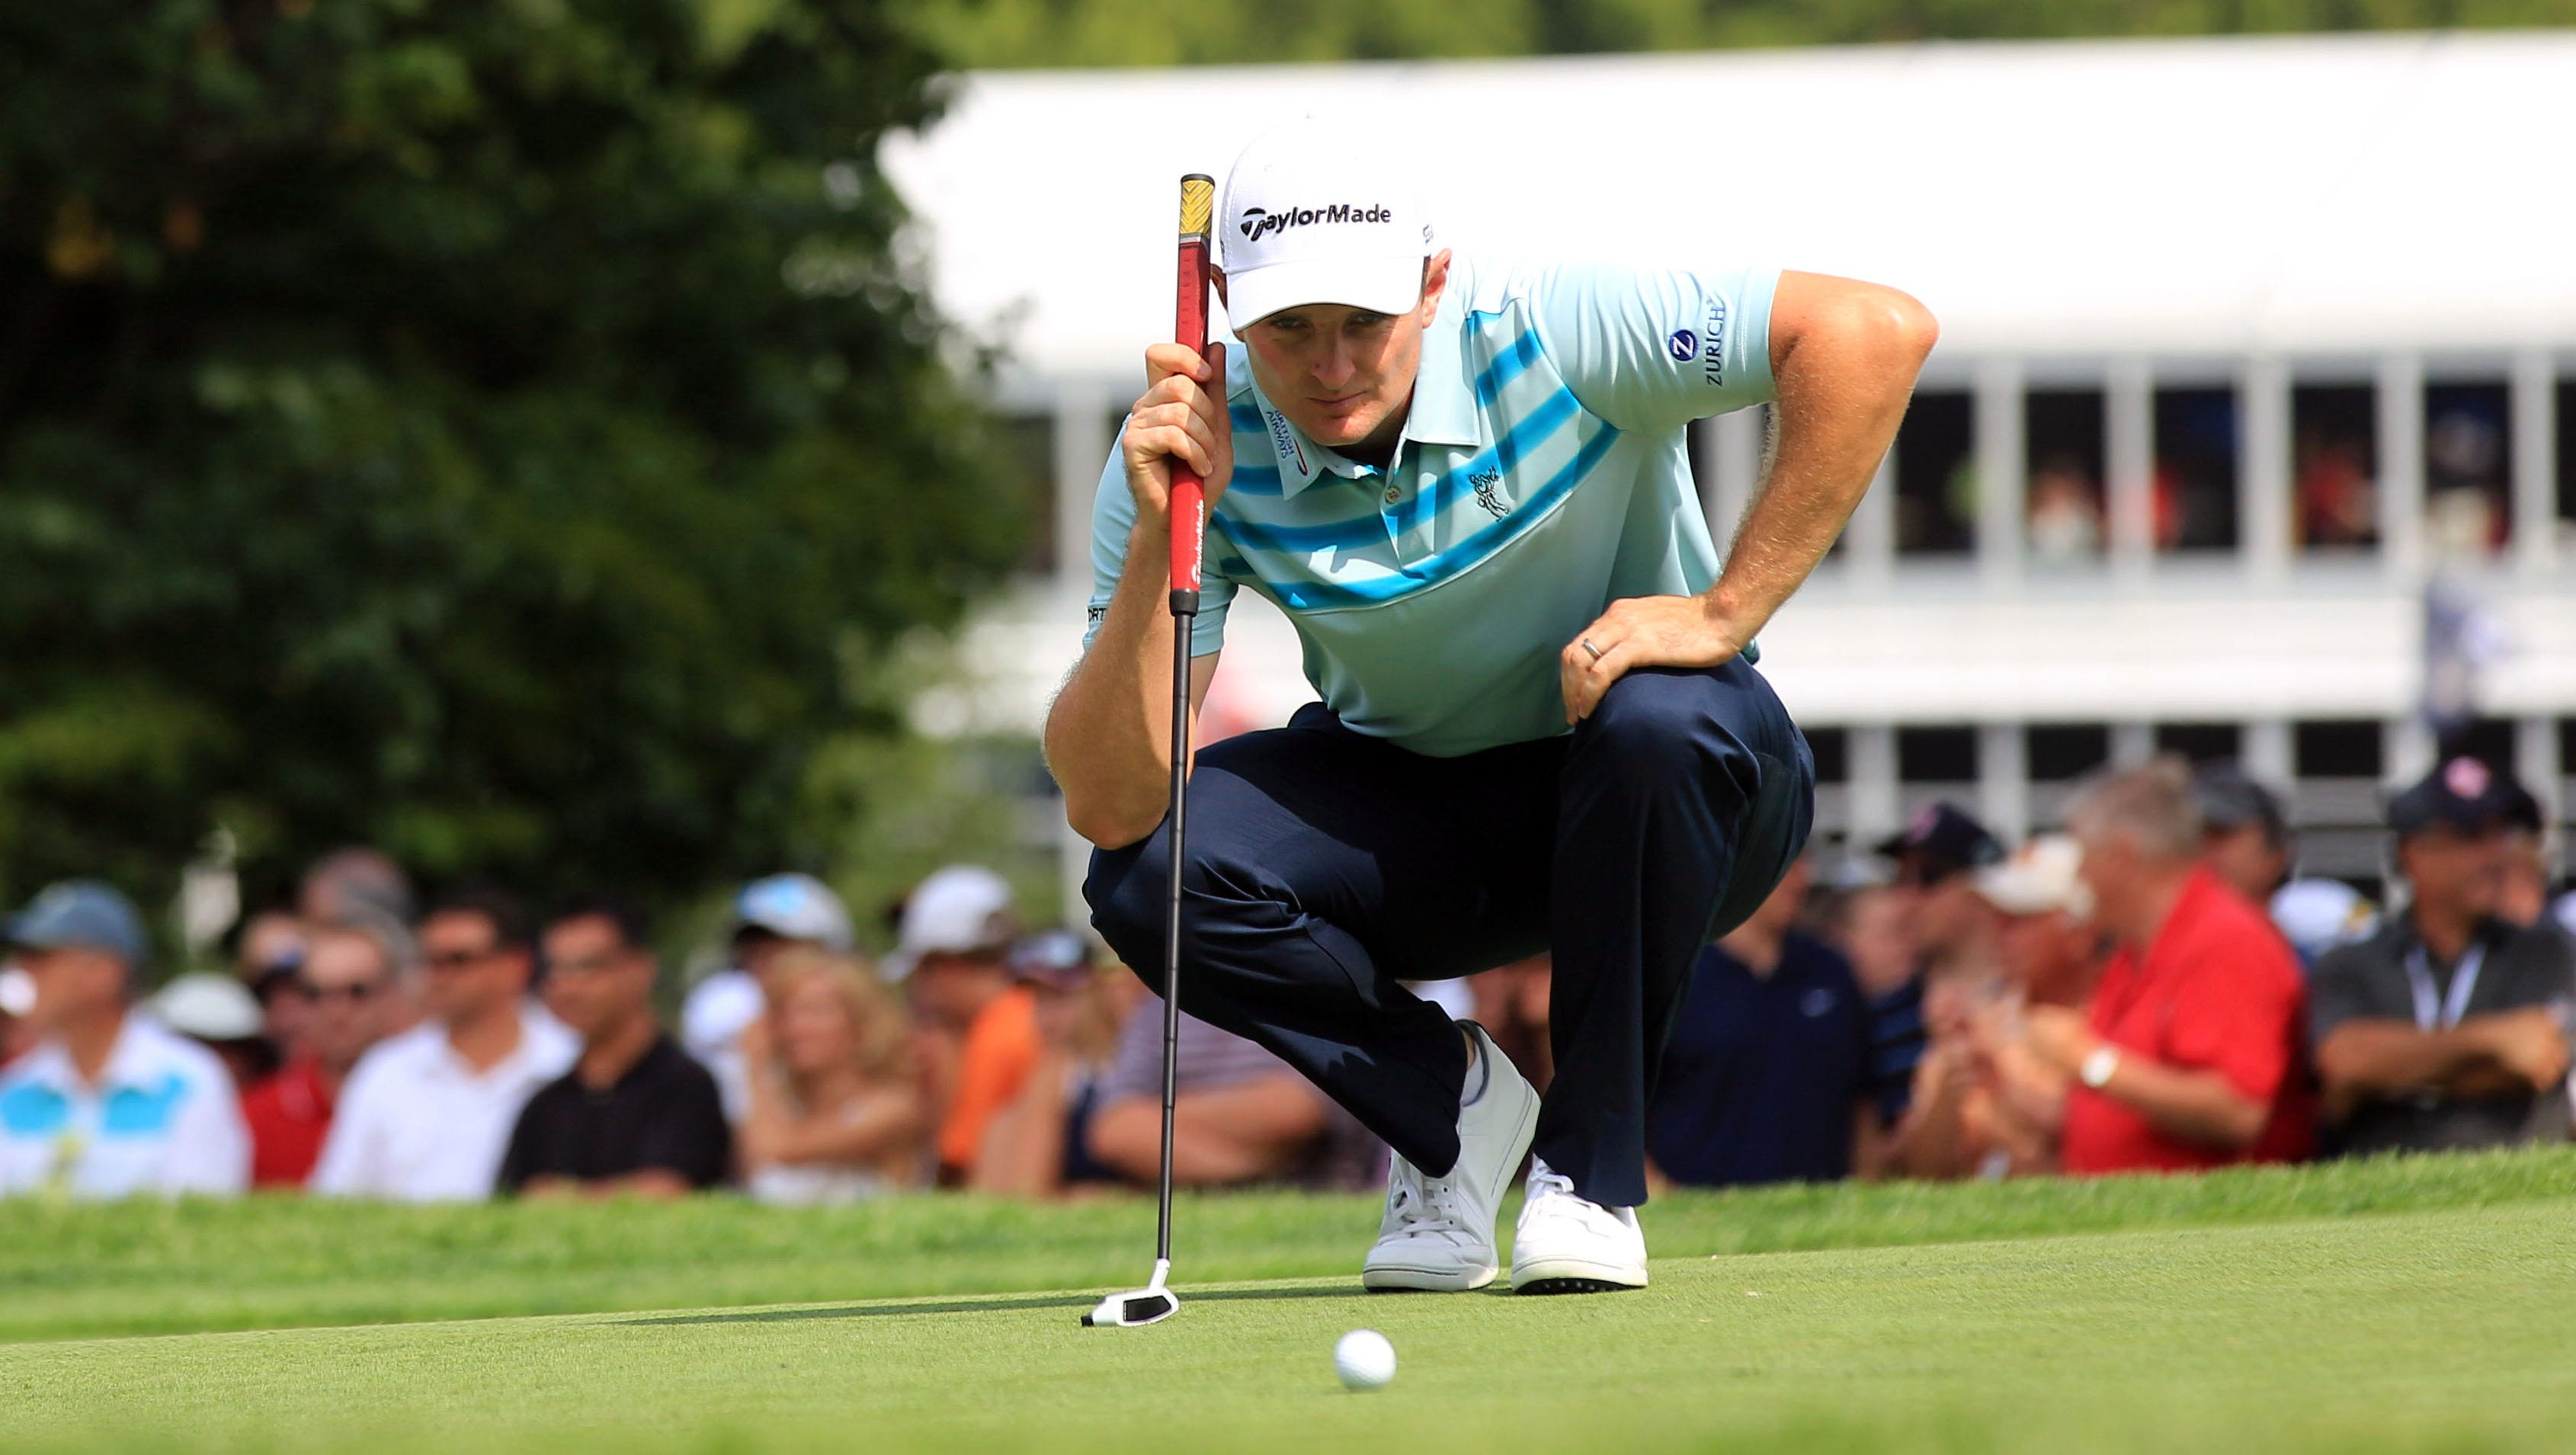 Aug 8, 2013; Rochester, NY, USA; Justin Rose lines up his putt on the 8th gren during the first round of the 95th PGA Championship at Oak Hill Country Club. Mandatory Credit: Allan Henry-USA TODAY Sports ORG XMIT: USATSI-120254 ORIG FILE ID:  20130808_pjc_ah2_249.JPG